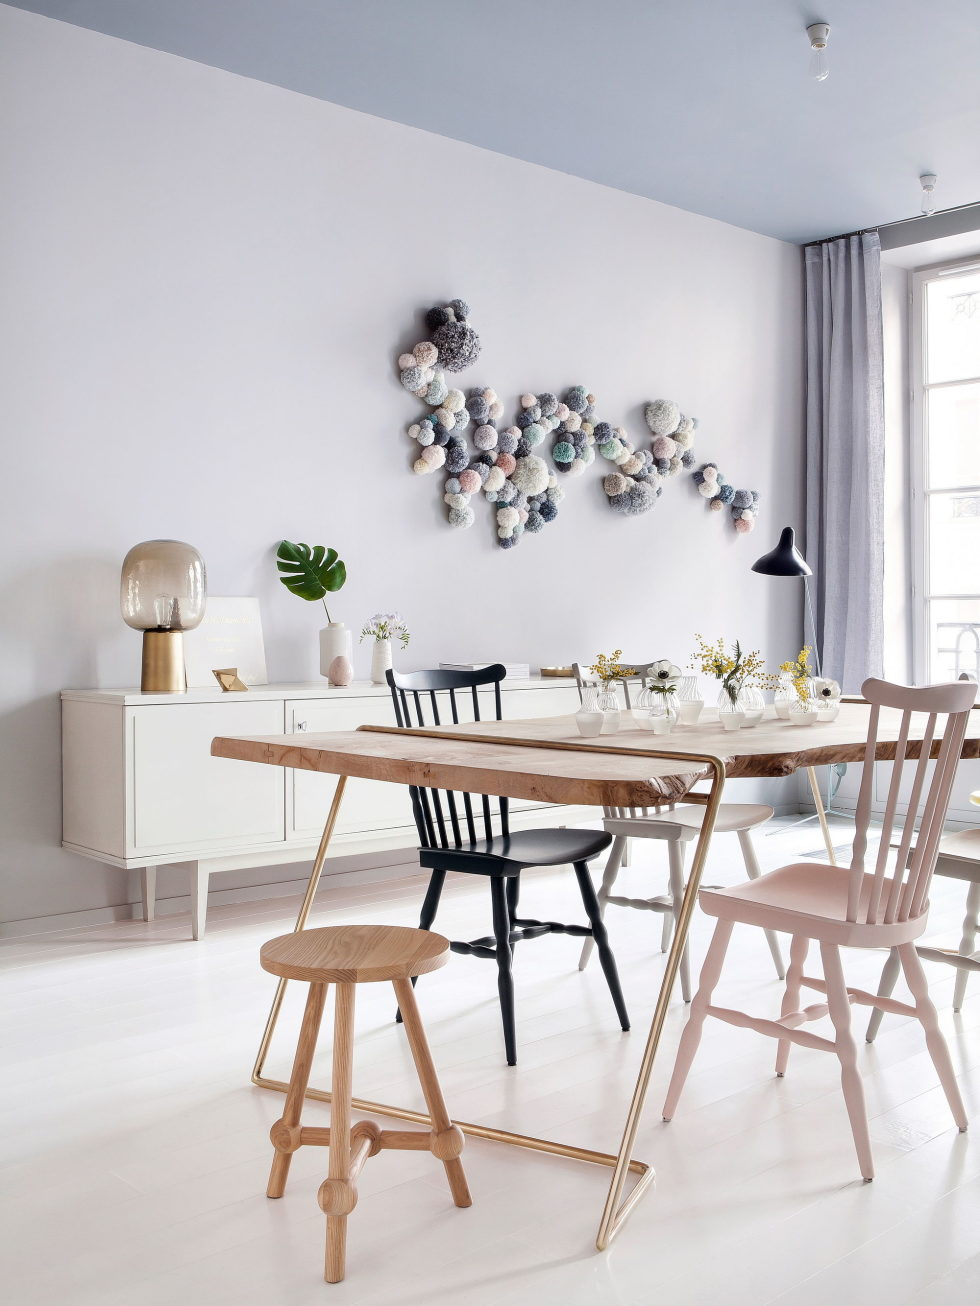 chez-marie-sixtine-the-apartment-for-guests-in-marie-sixtine-store-2